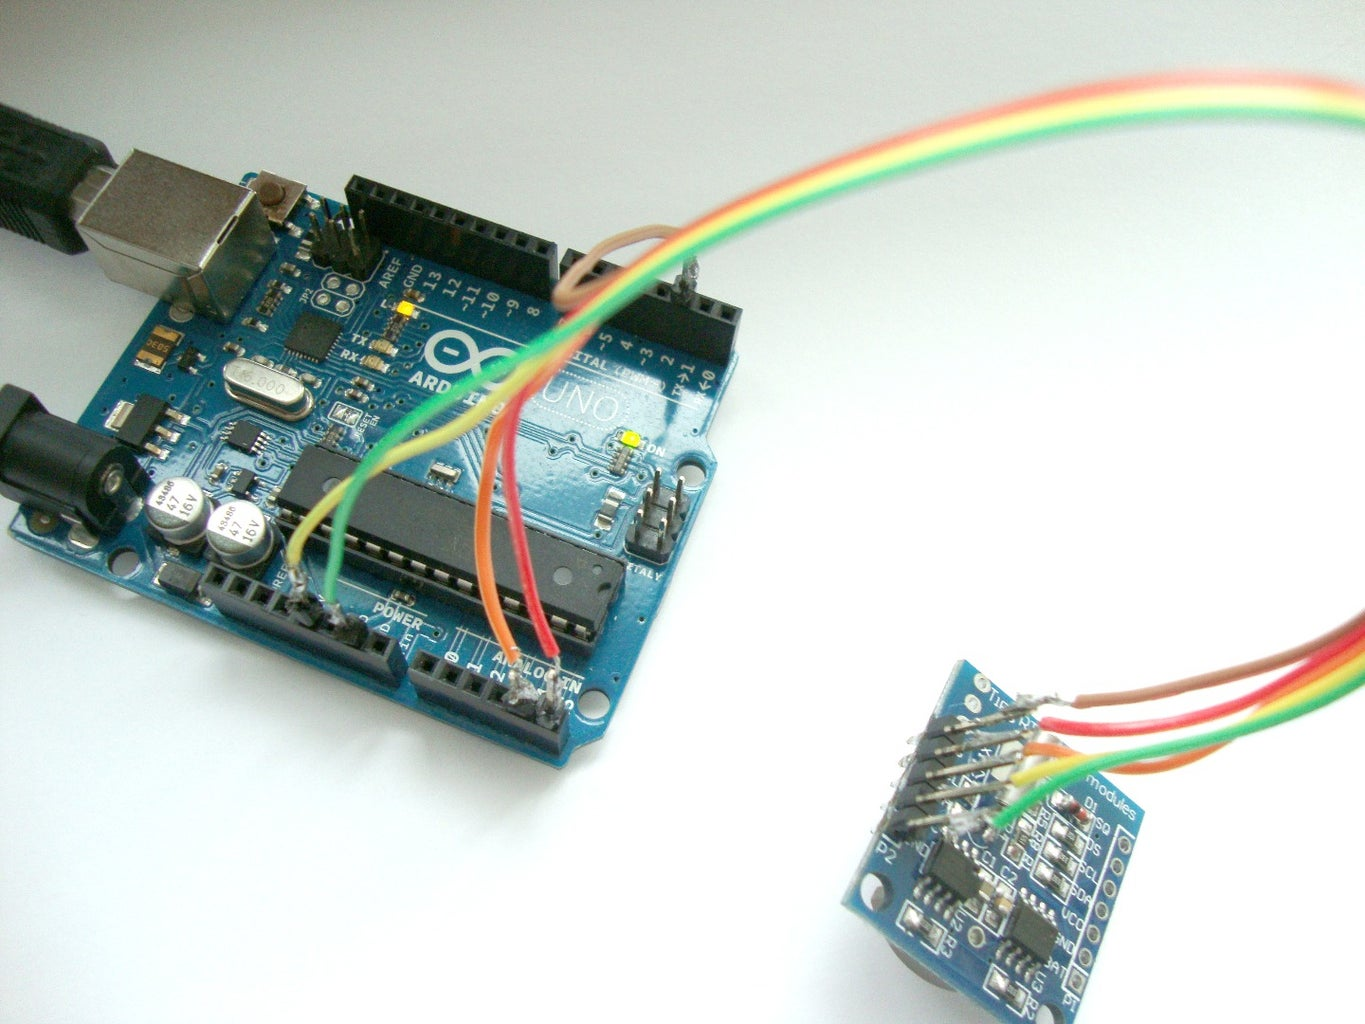 Setting Up the Real Time Clock (RTC)